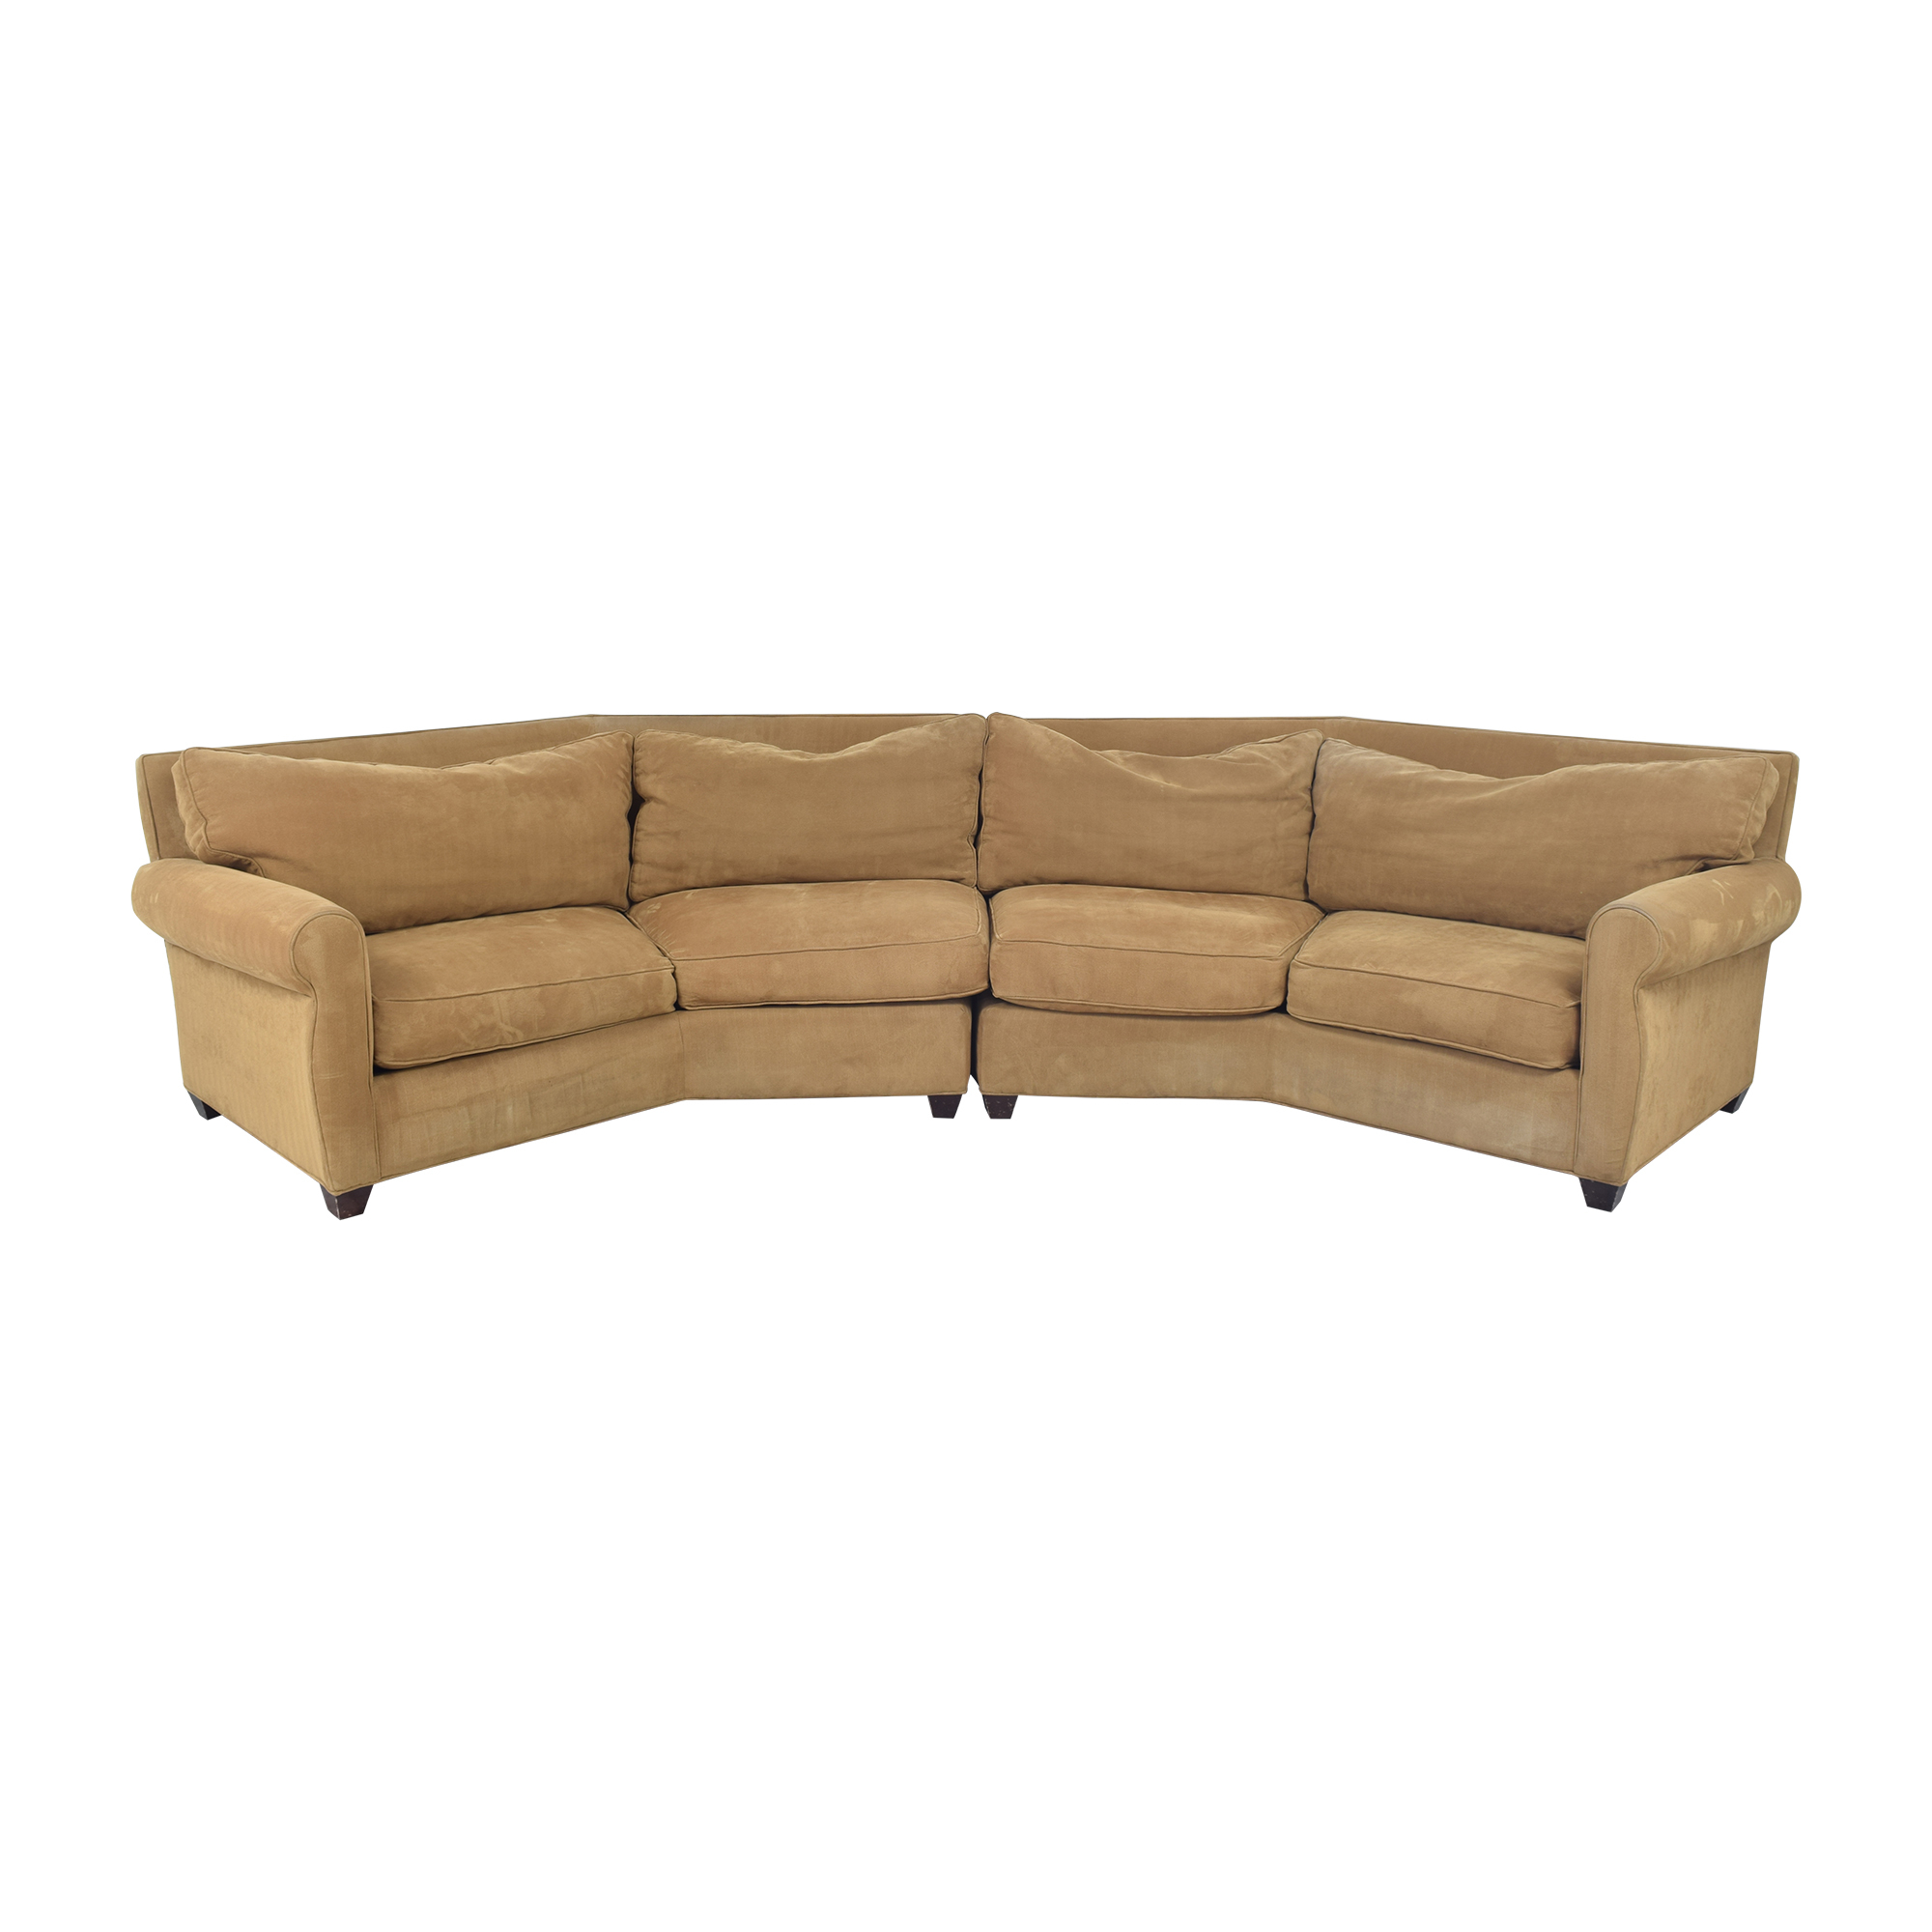 McCreary Modern McCreary Modern Sectional Sofa by  nyc